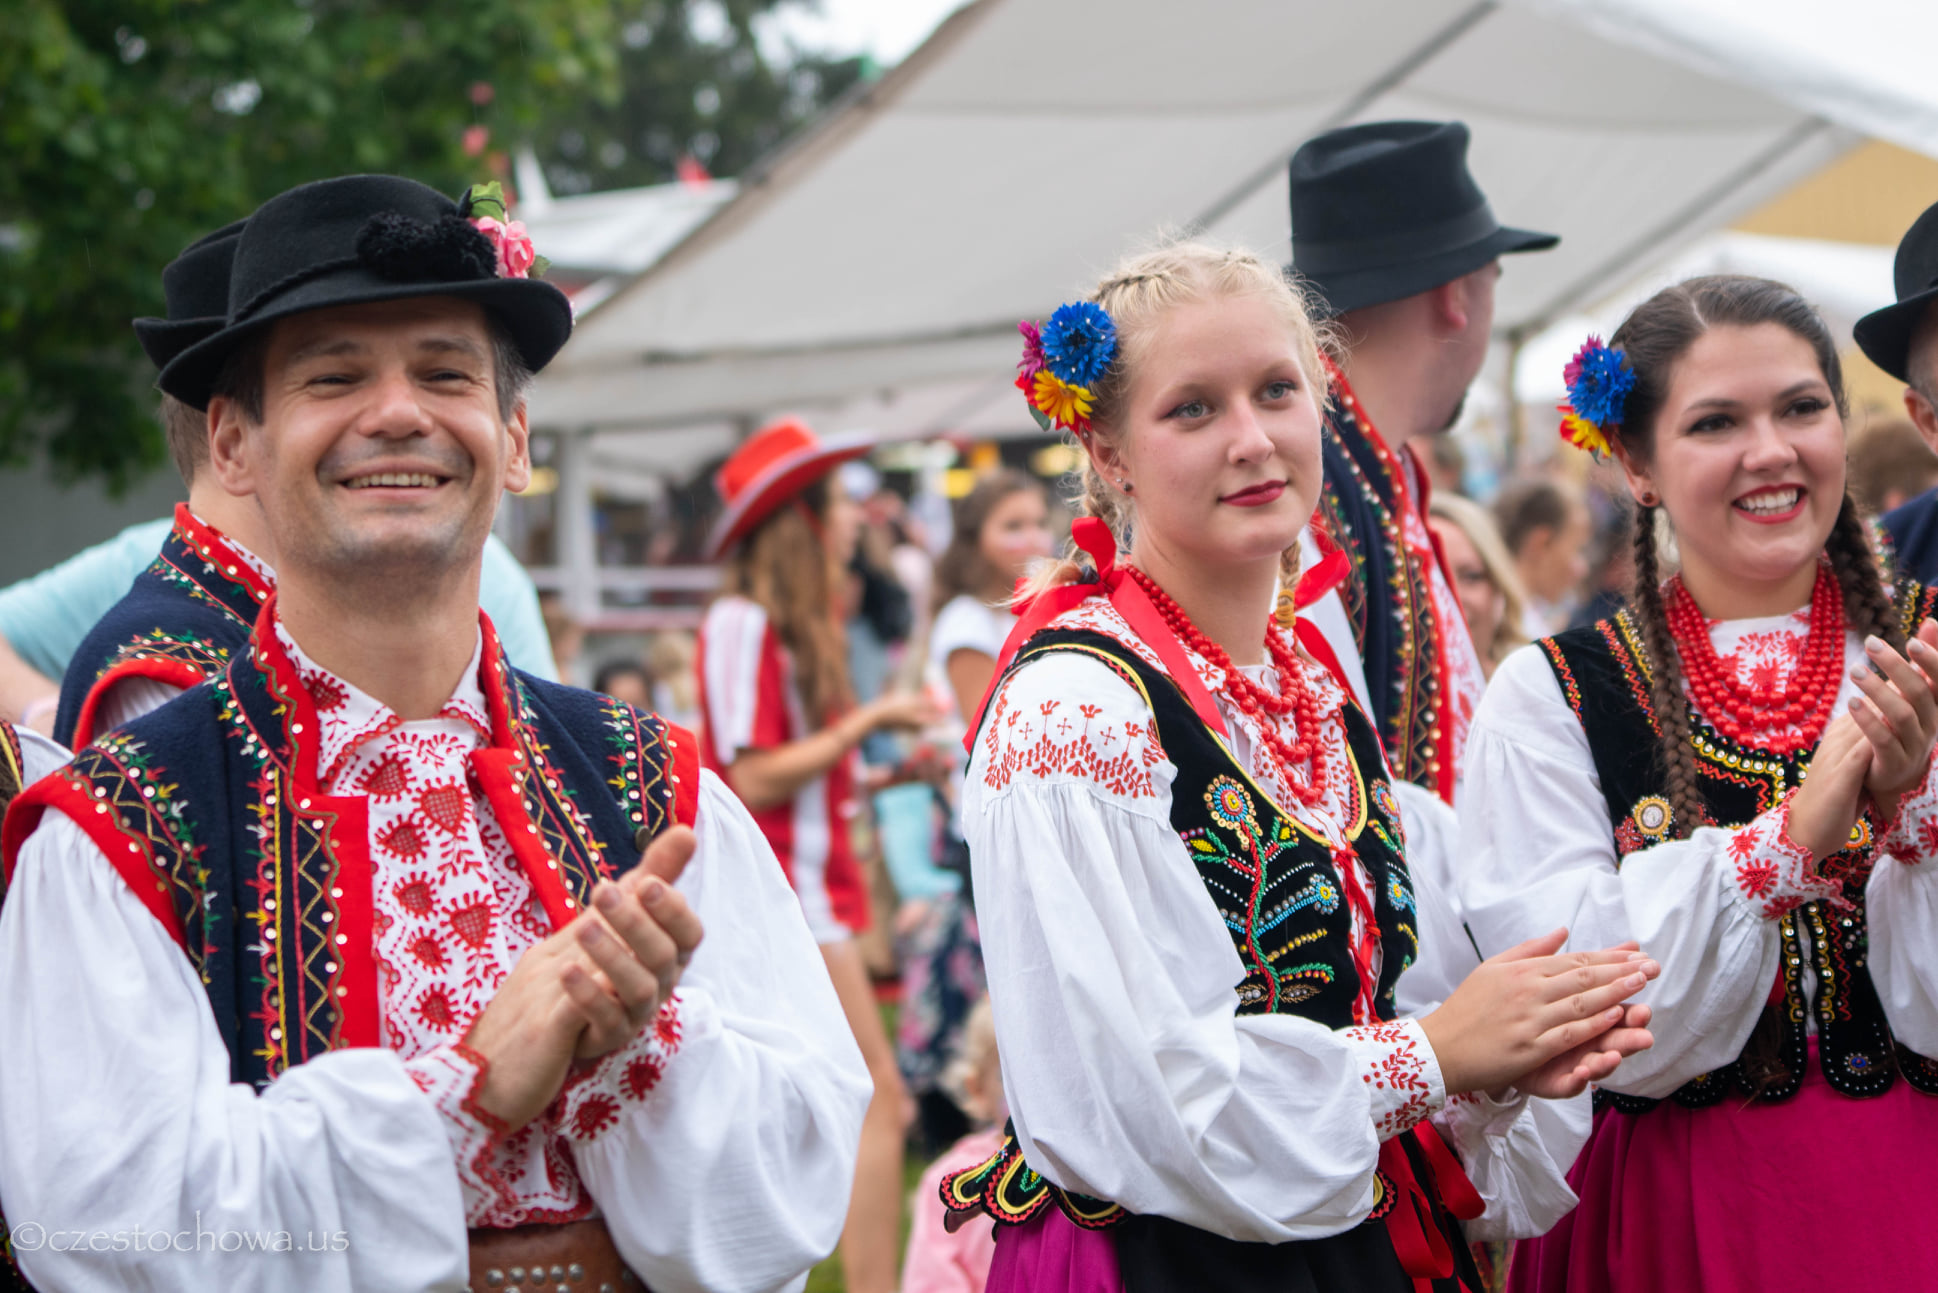 September 11th & 12th - The Second Weekend of the 55th Annual Polish American Family Festival & Country Fair 2021!